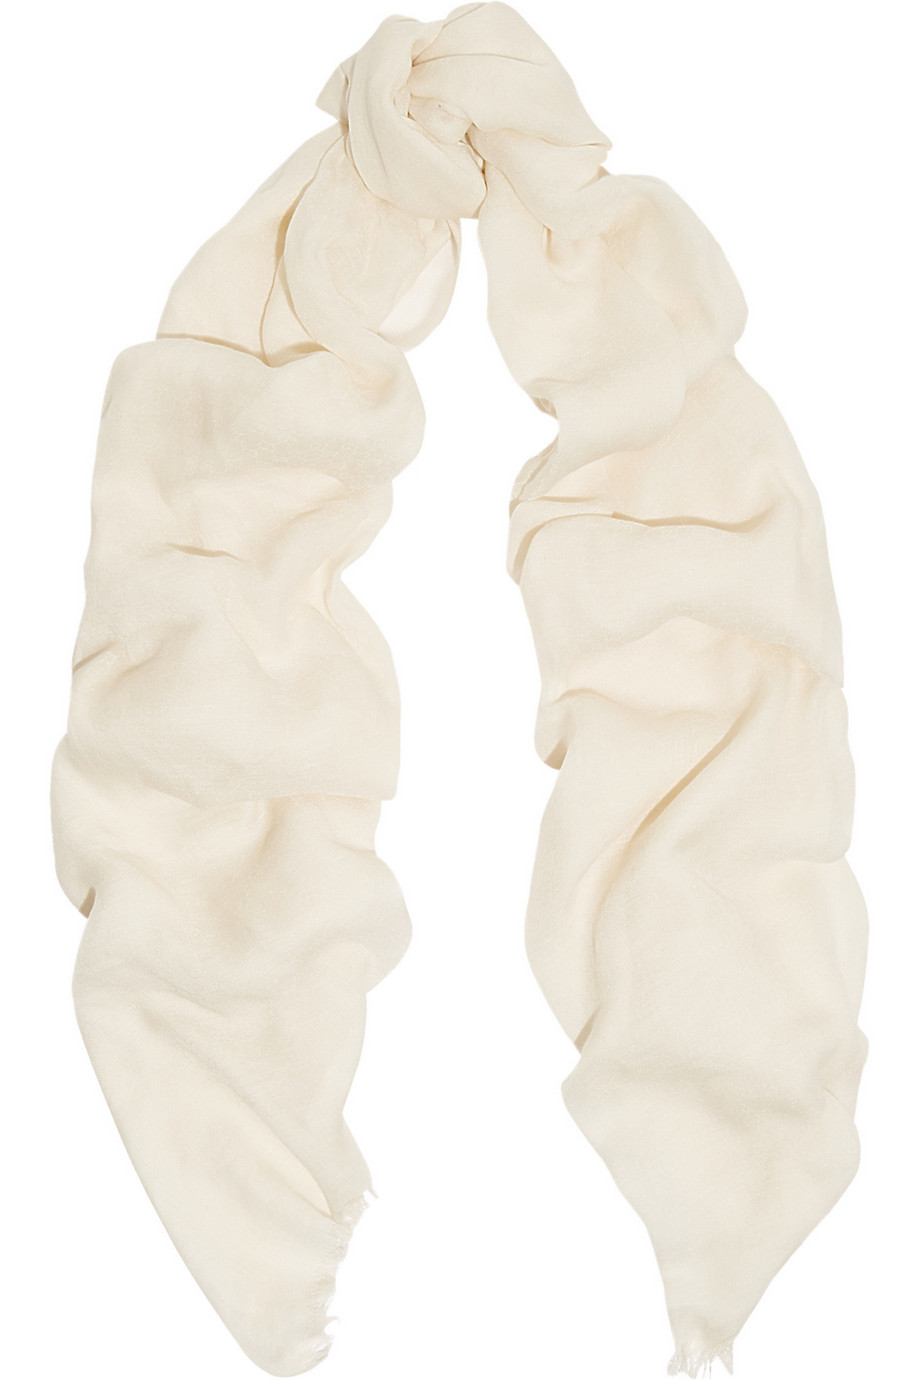 Gucci Ametista Cotton-Blend Jacquard Scarf, Ivory, Women's